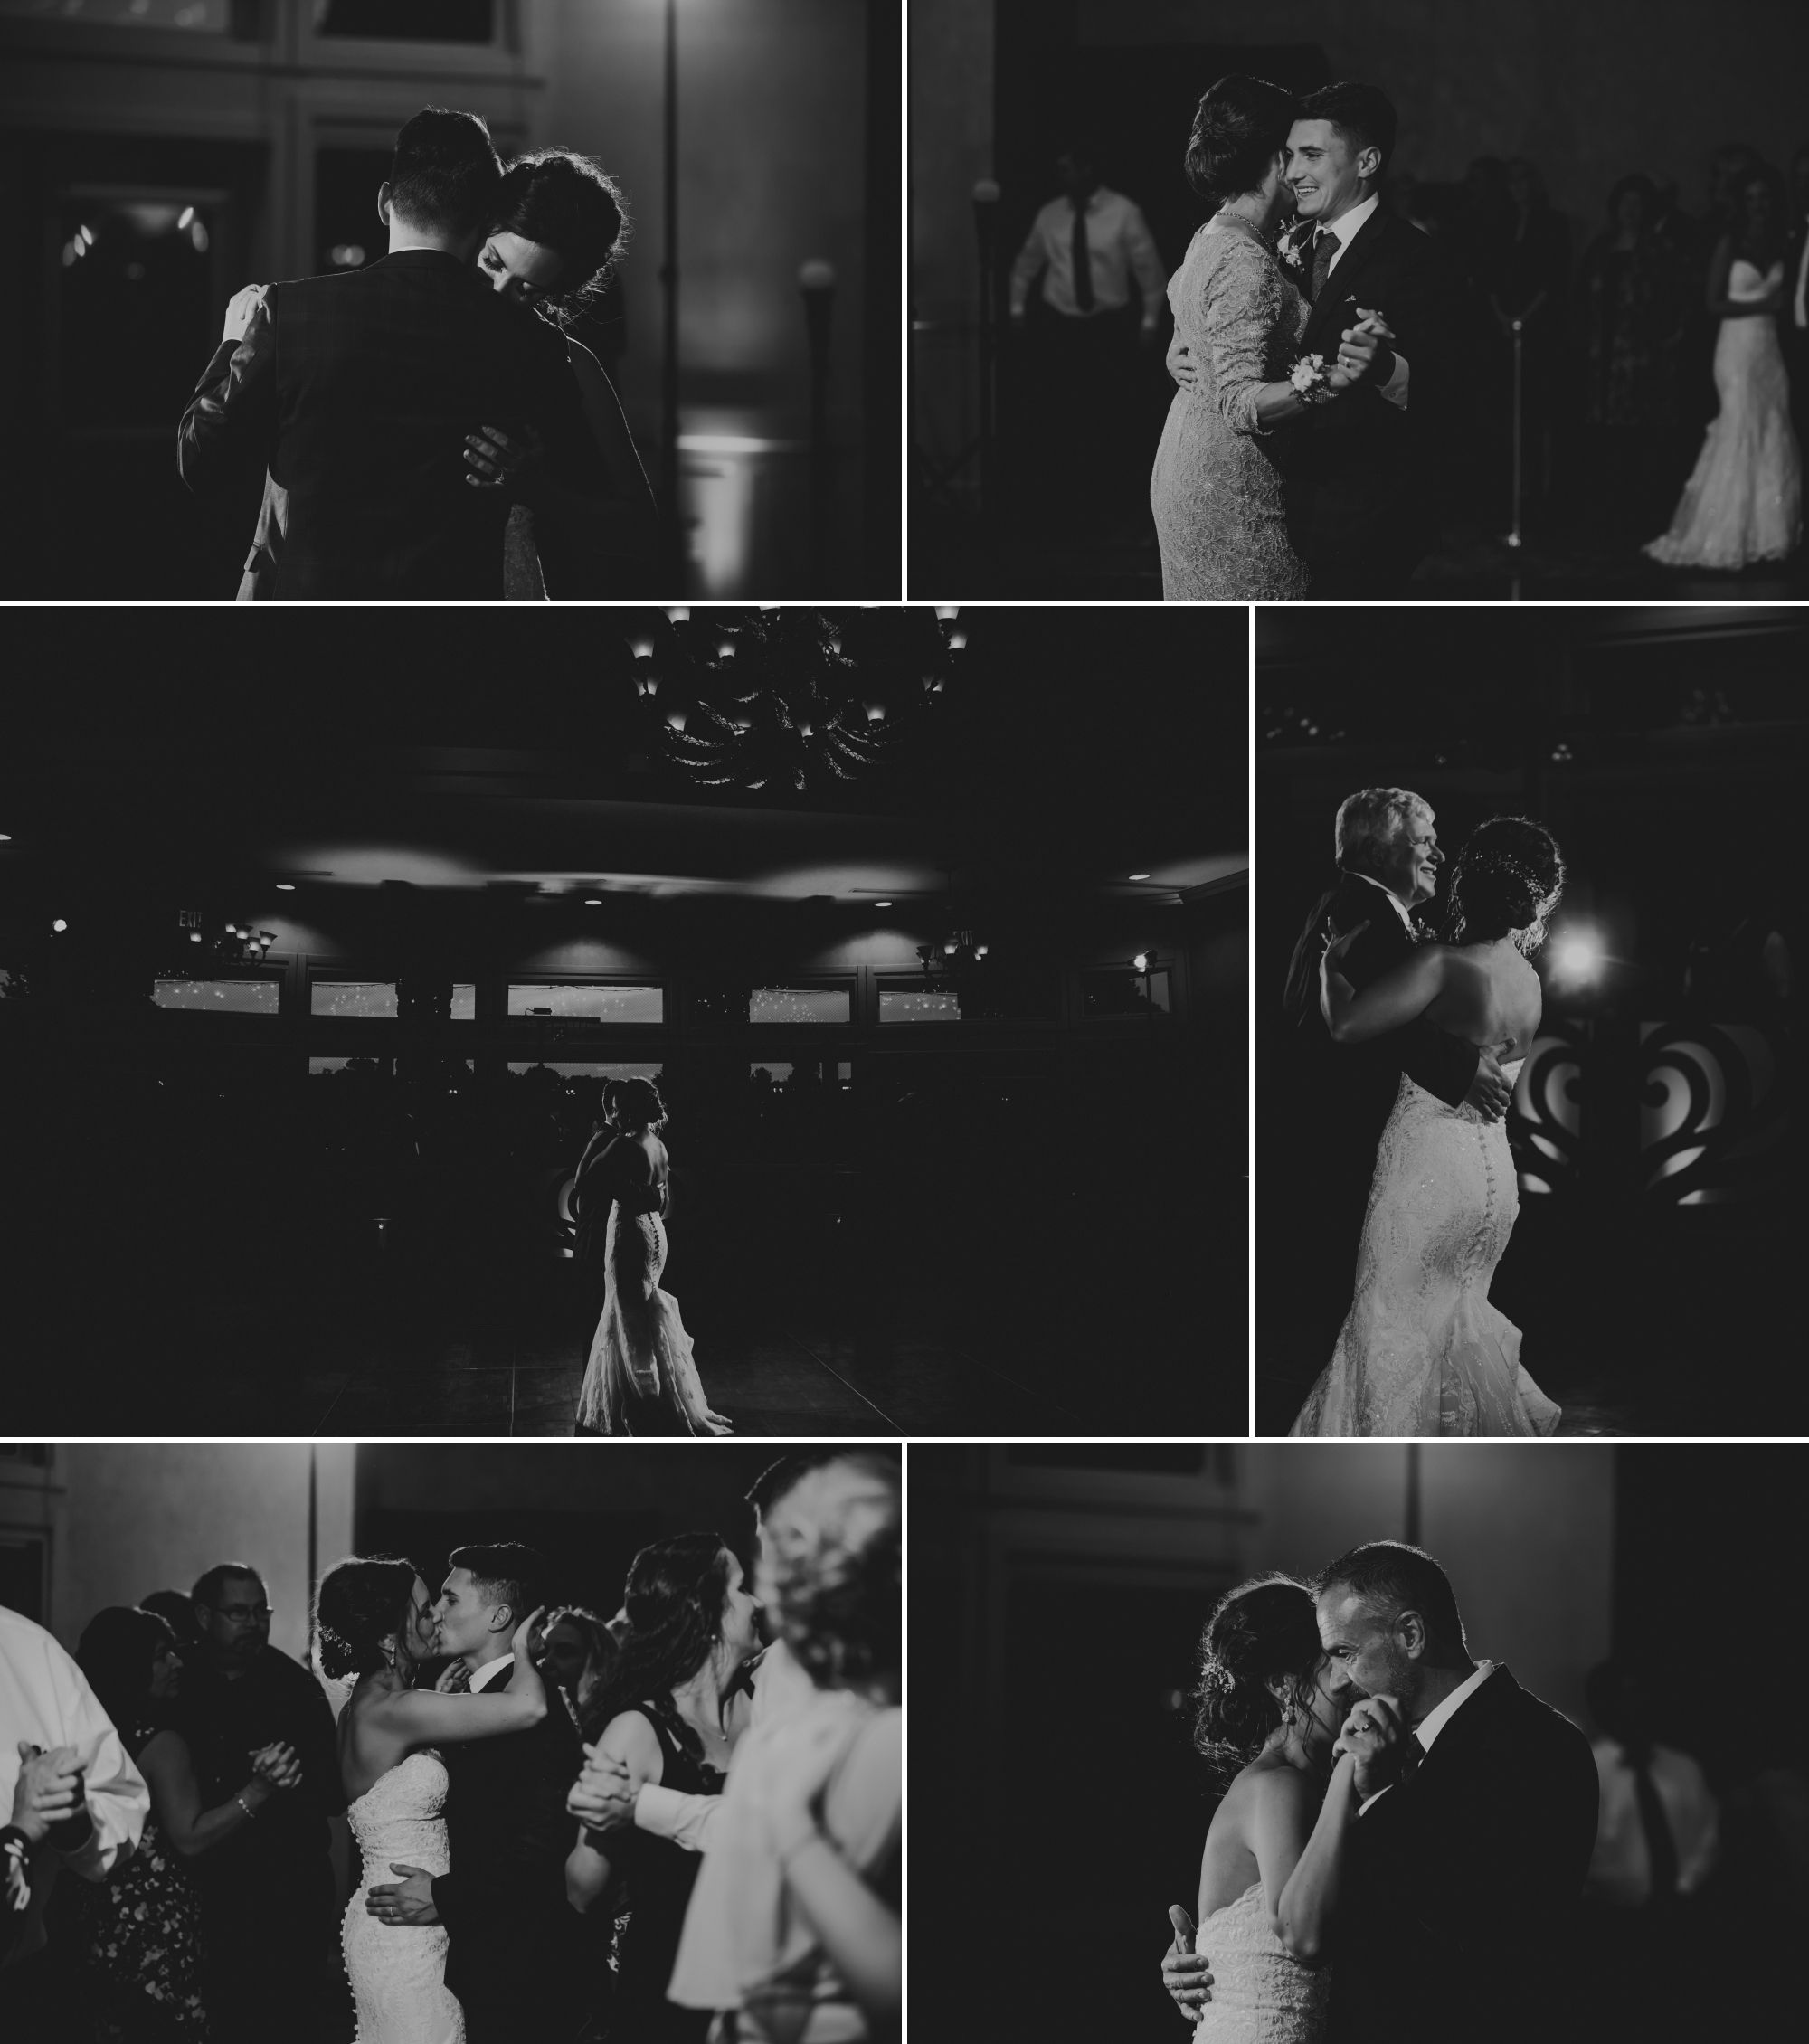 Black and white collage of the formal dances and the bride and groom kissing on the dance floor with people around them.